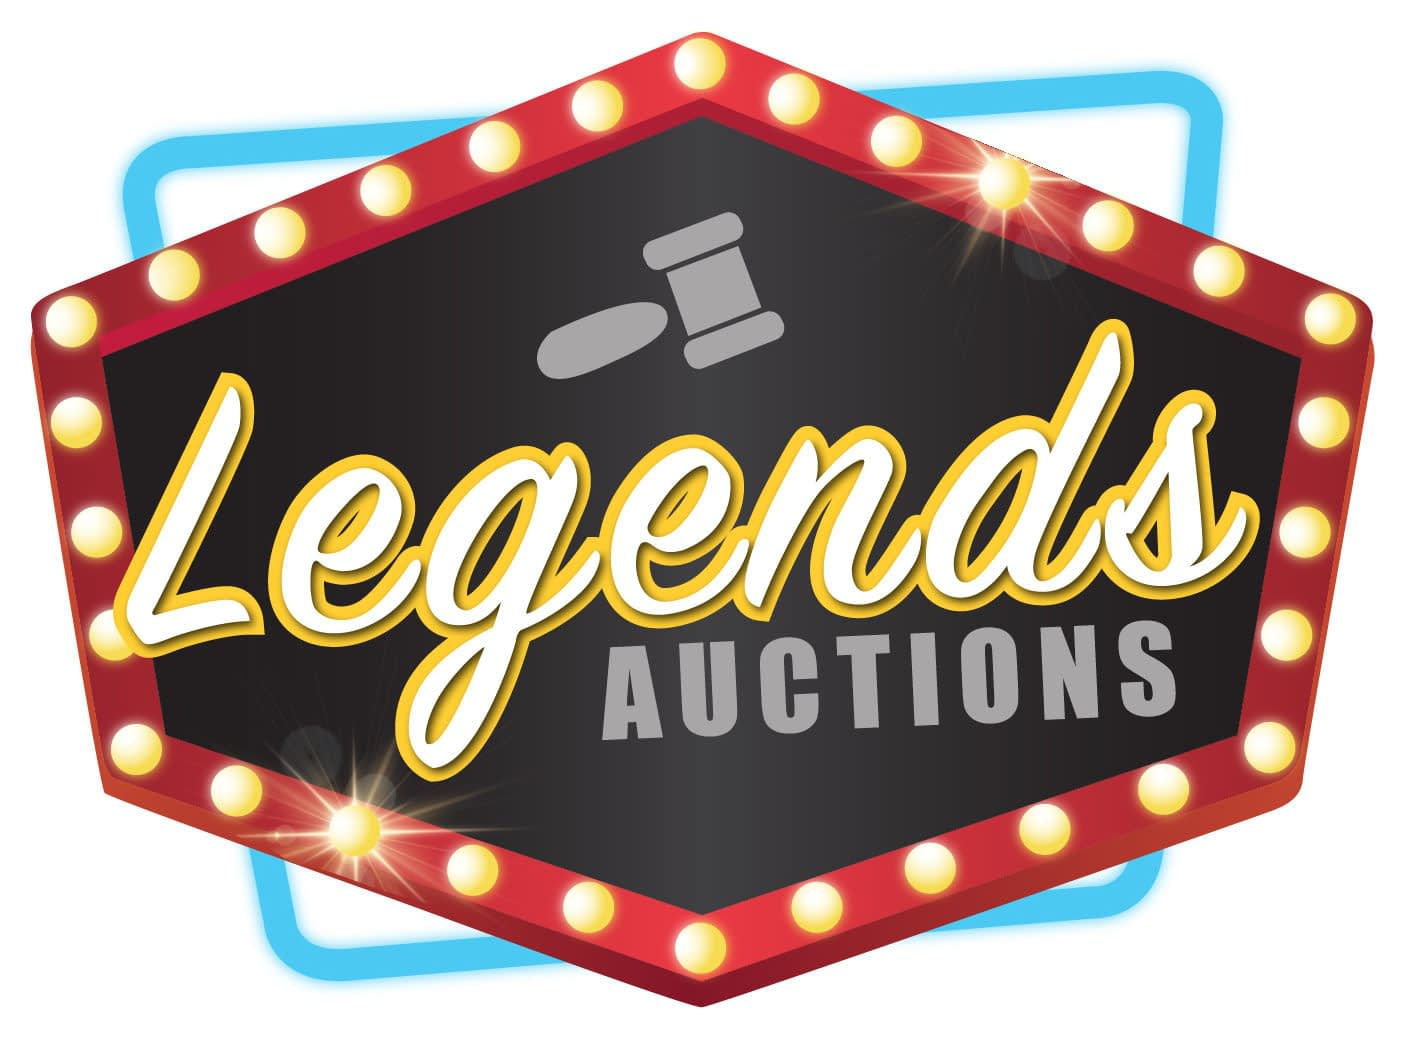 LEGENDS AUCTIONS